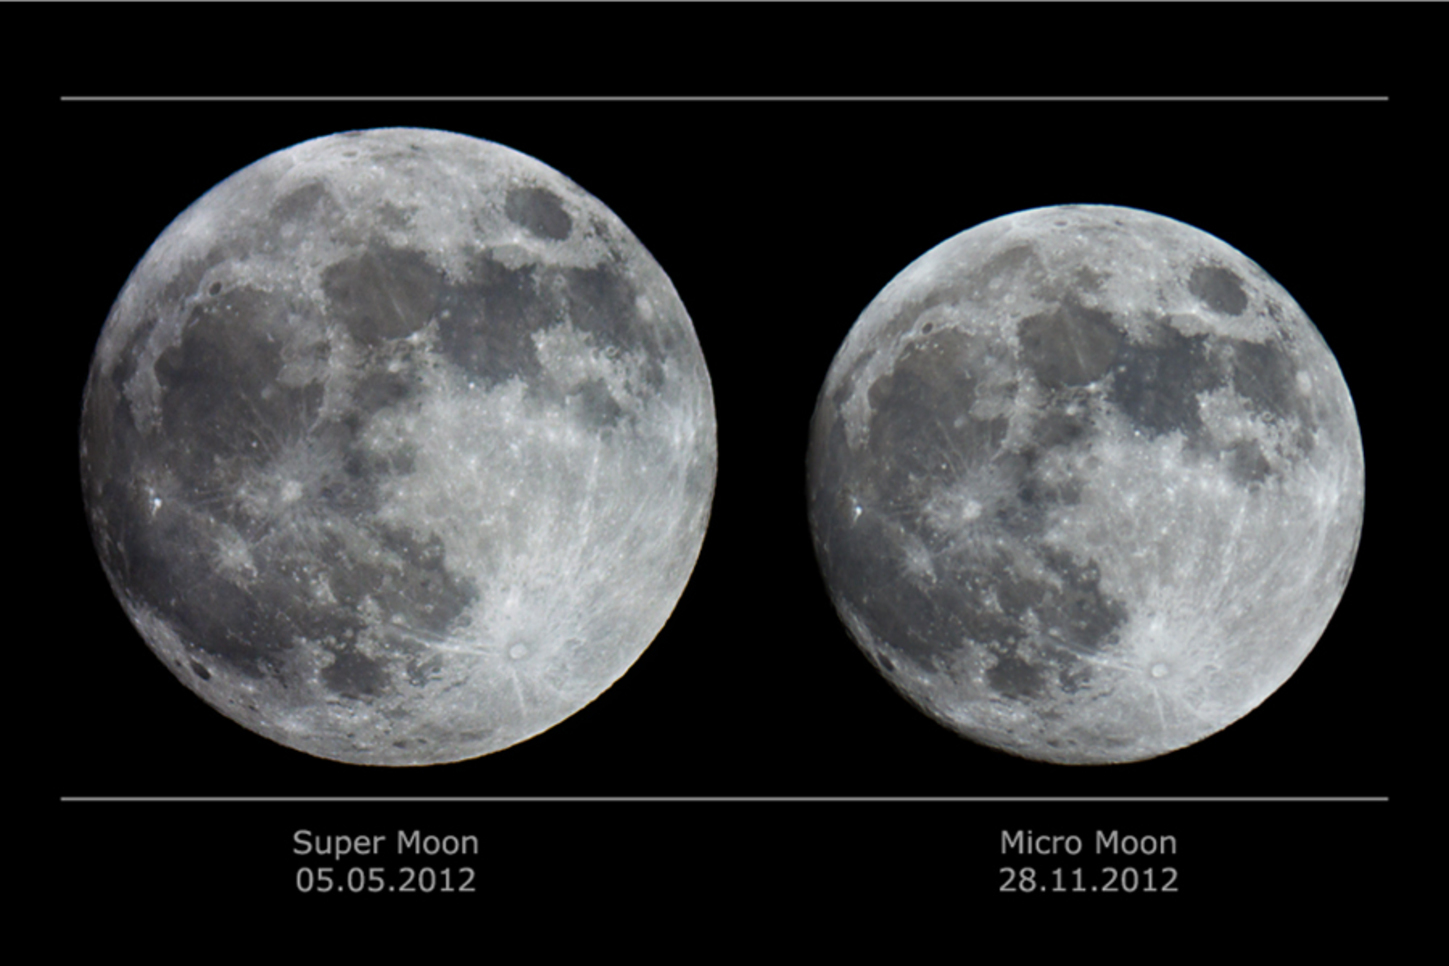 Two moons as seen from Earth: at perigee on the left, at apogee on the right.